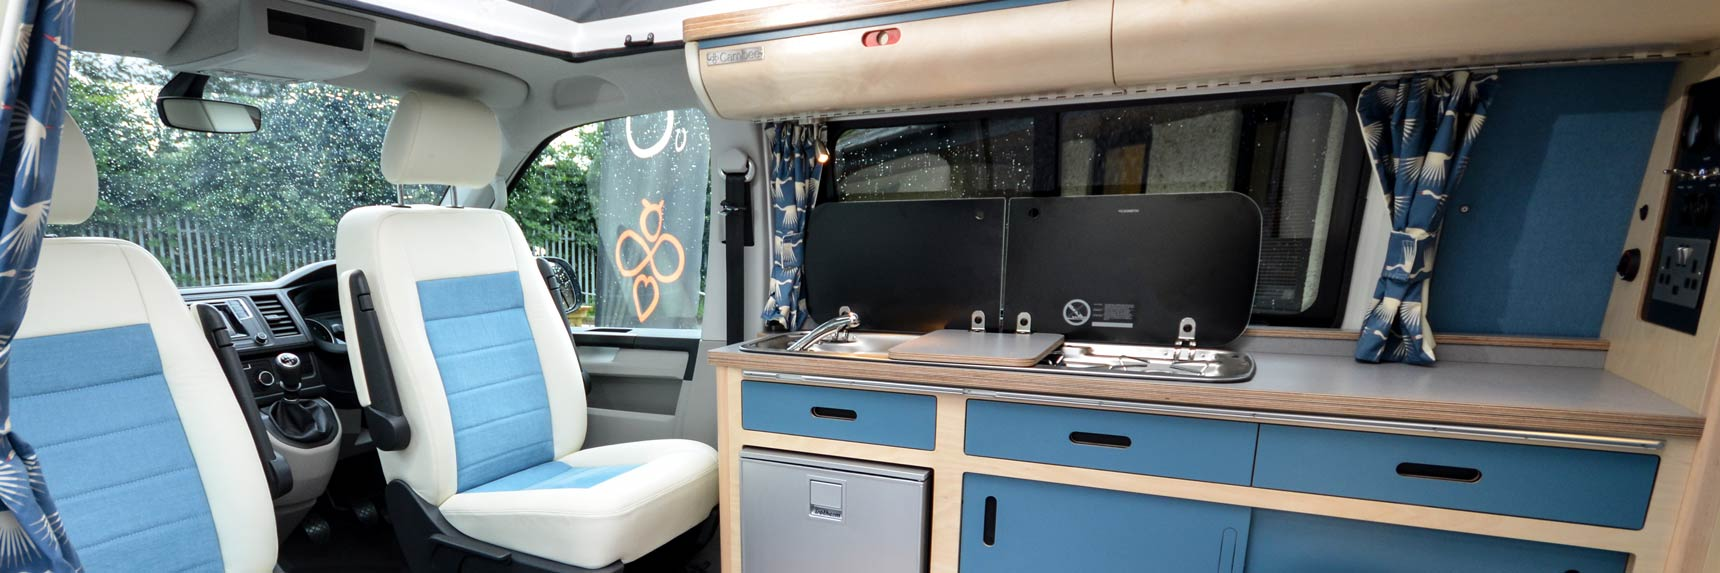 Blue and white cool eco campervan conversion with bespoke birch plywood kitchen, built-in fridge freezer, sink, gas hobs with clever overhead locker storage and smart seating